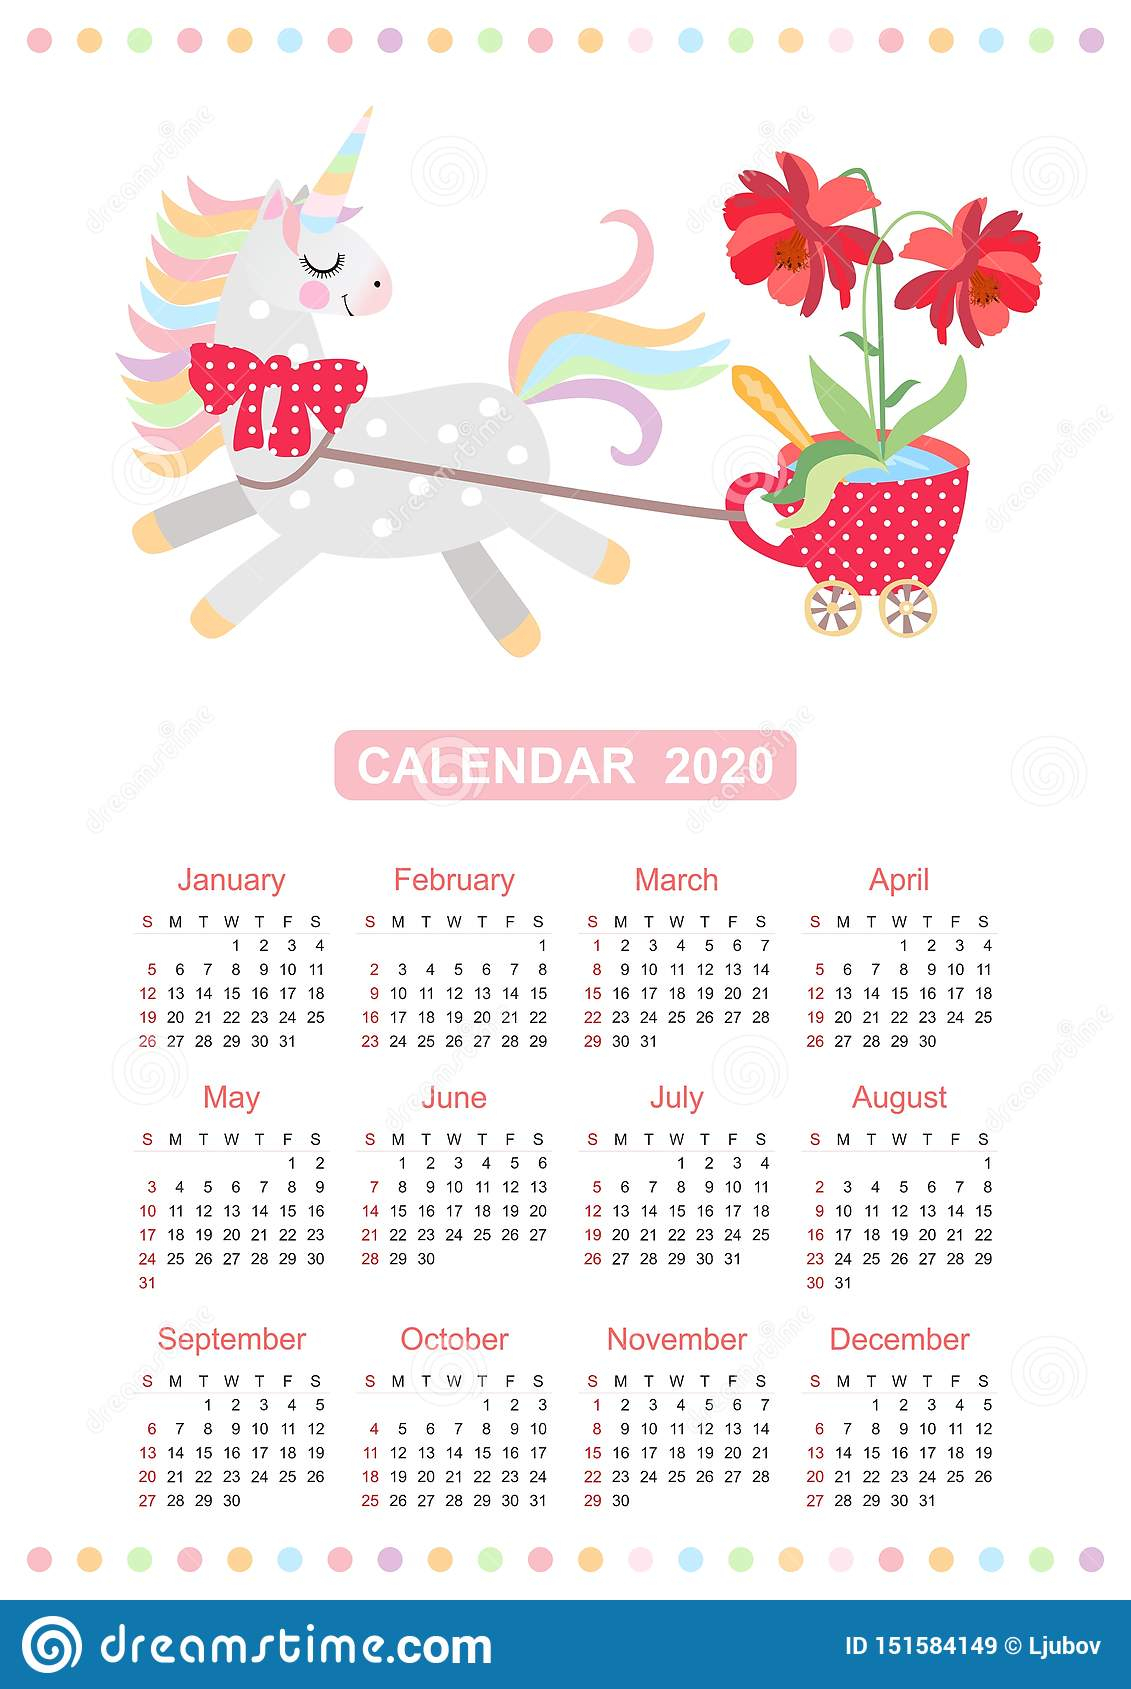 Cute Calendar For 2020 Year With Small Horse - Unicorn